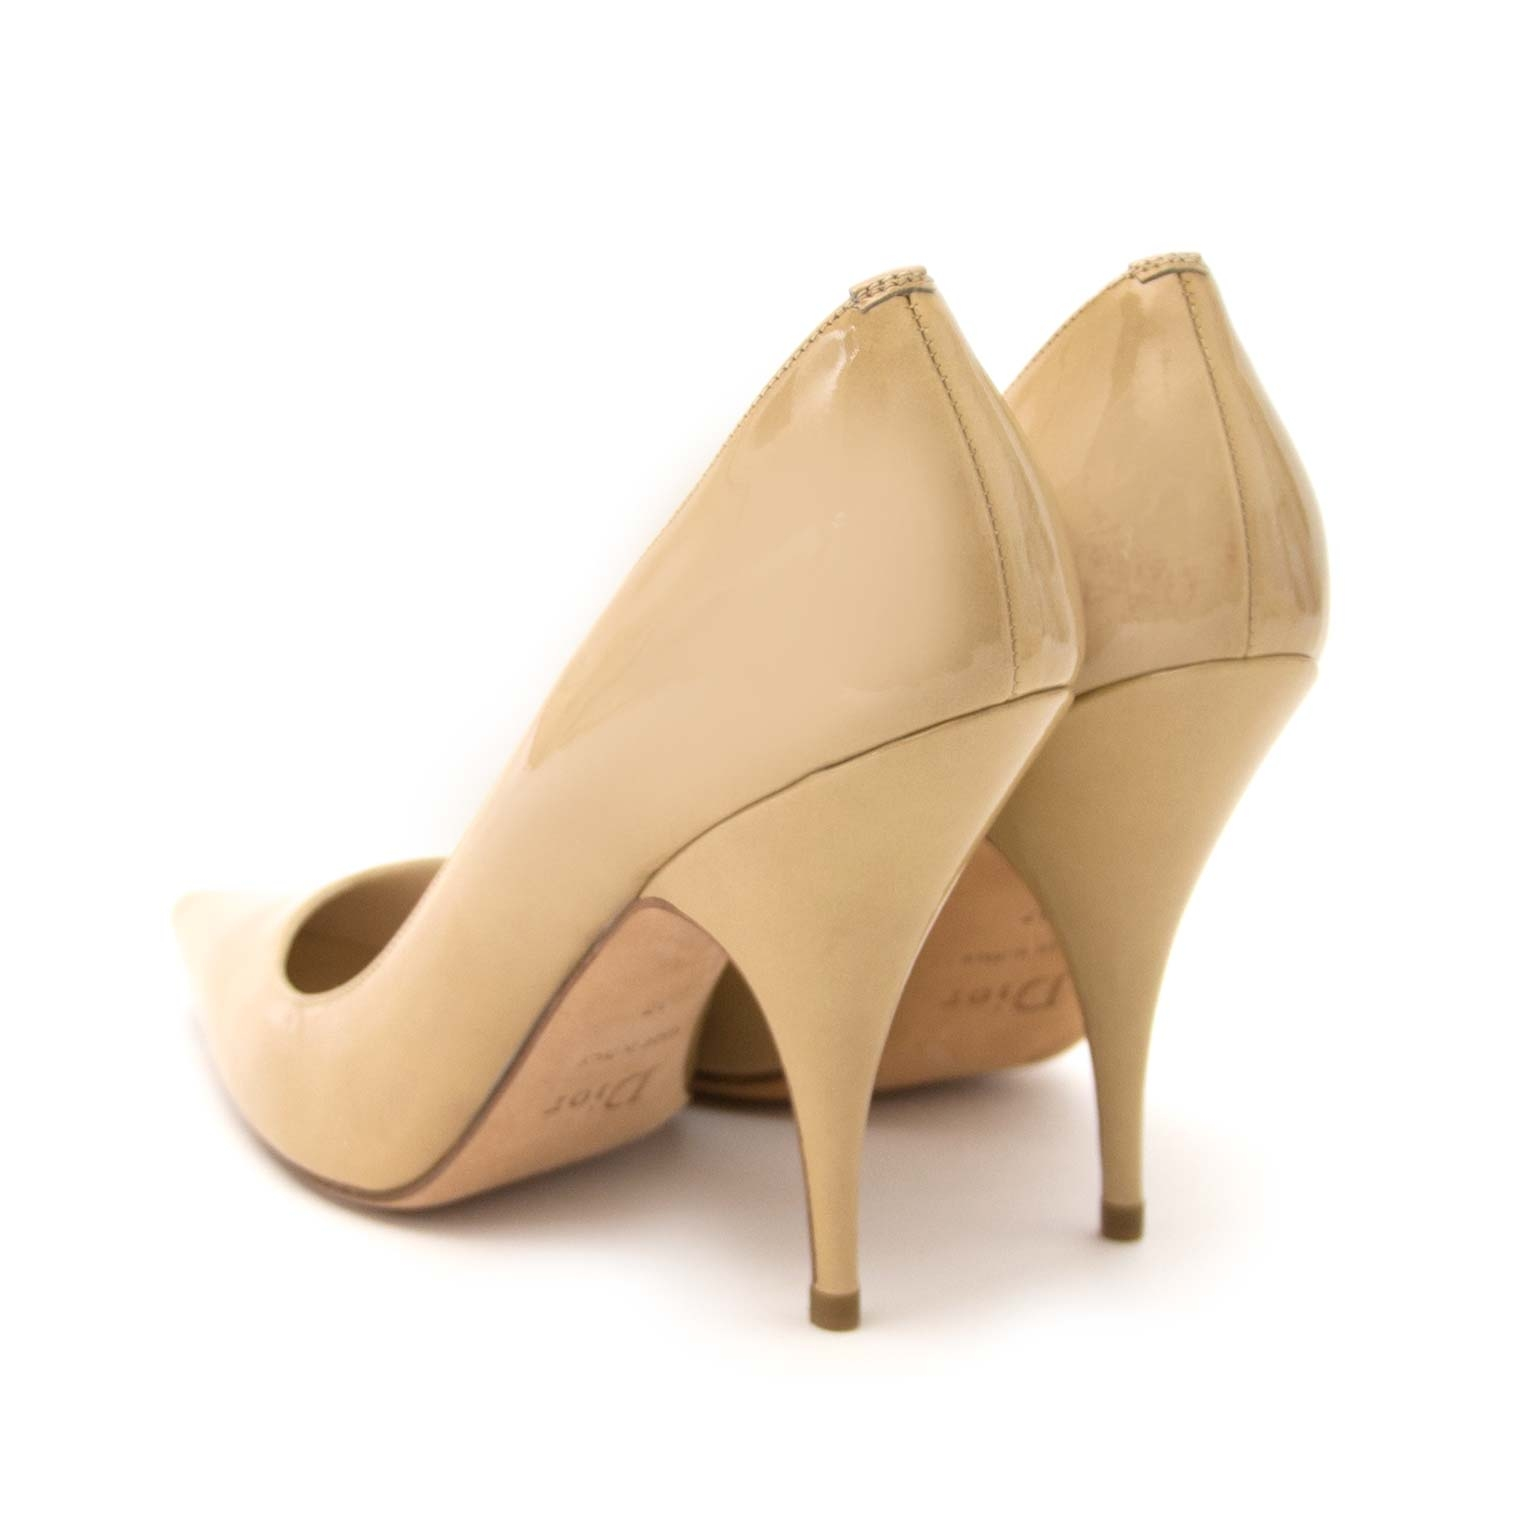 Christian Dior Beige Vernis Pointy Pumps - Size 37 Buy authentic designer Dior secondhand bags at Labellov at the best price. Safe and secure shopping. Koop tweedehands authentieke Dior tassen bij designer webwinkel labellov.